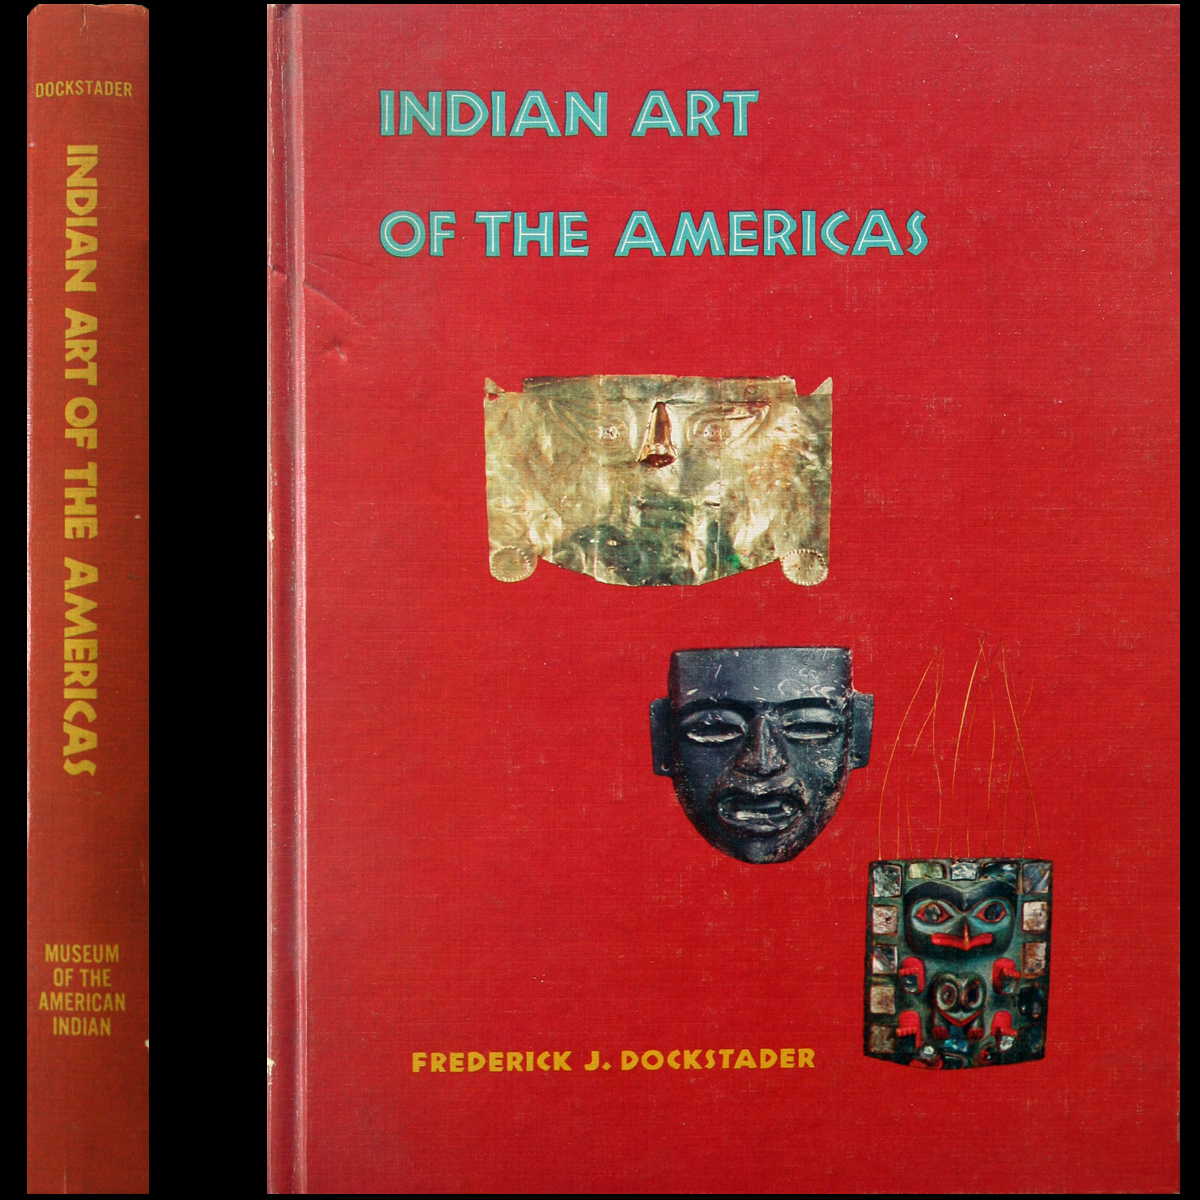 1973 Indian Art of the Americas - Dockstader 500 Plates OOP!